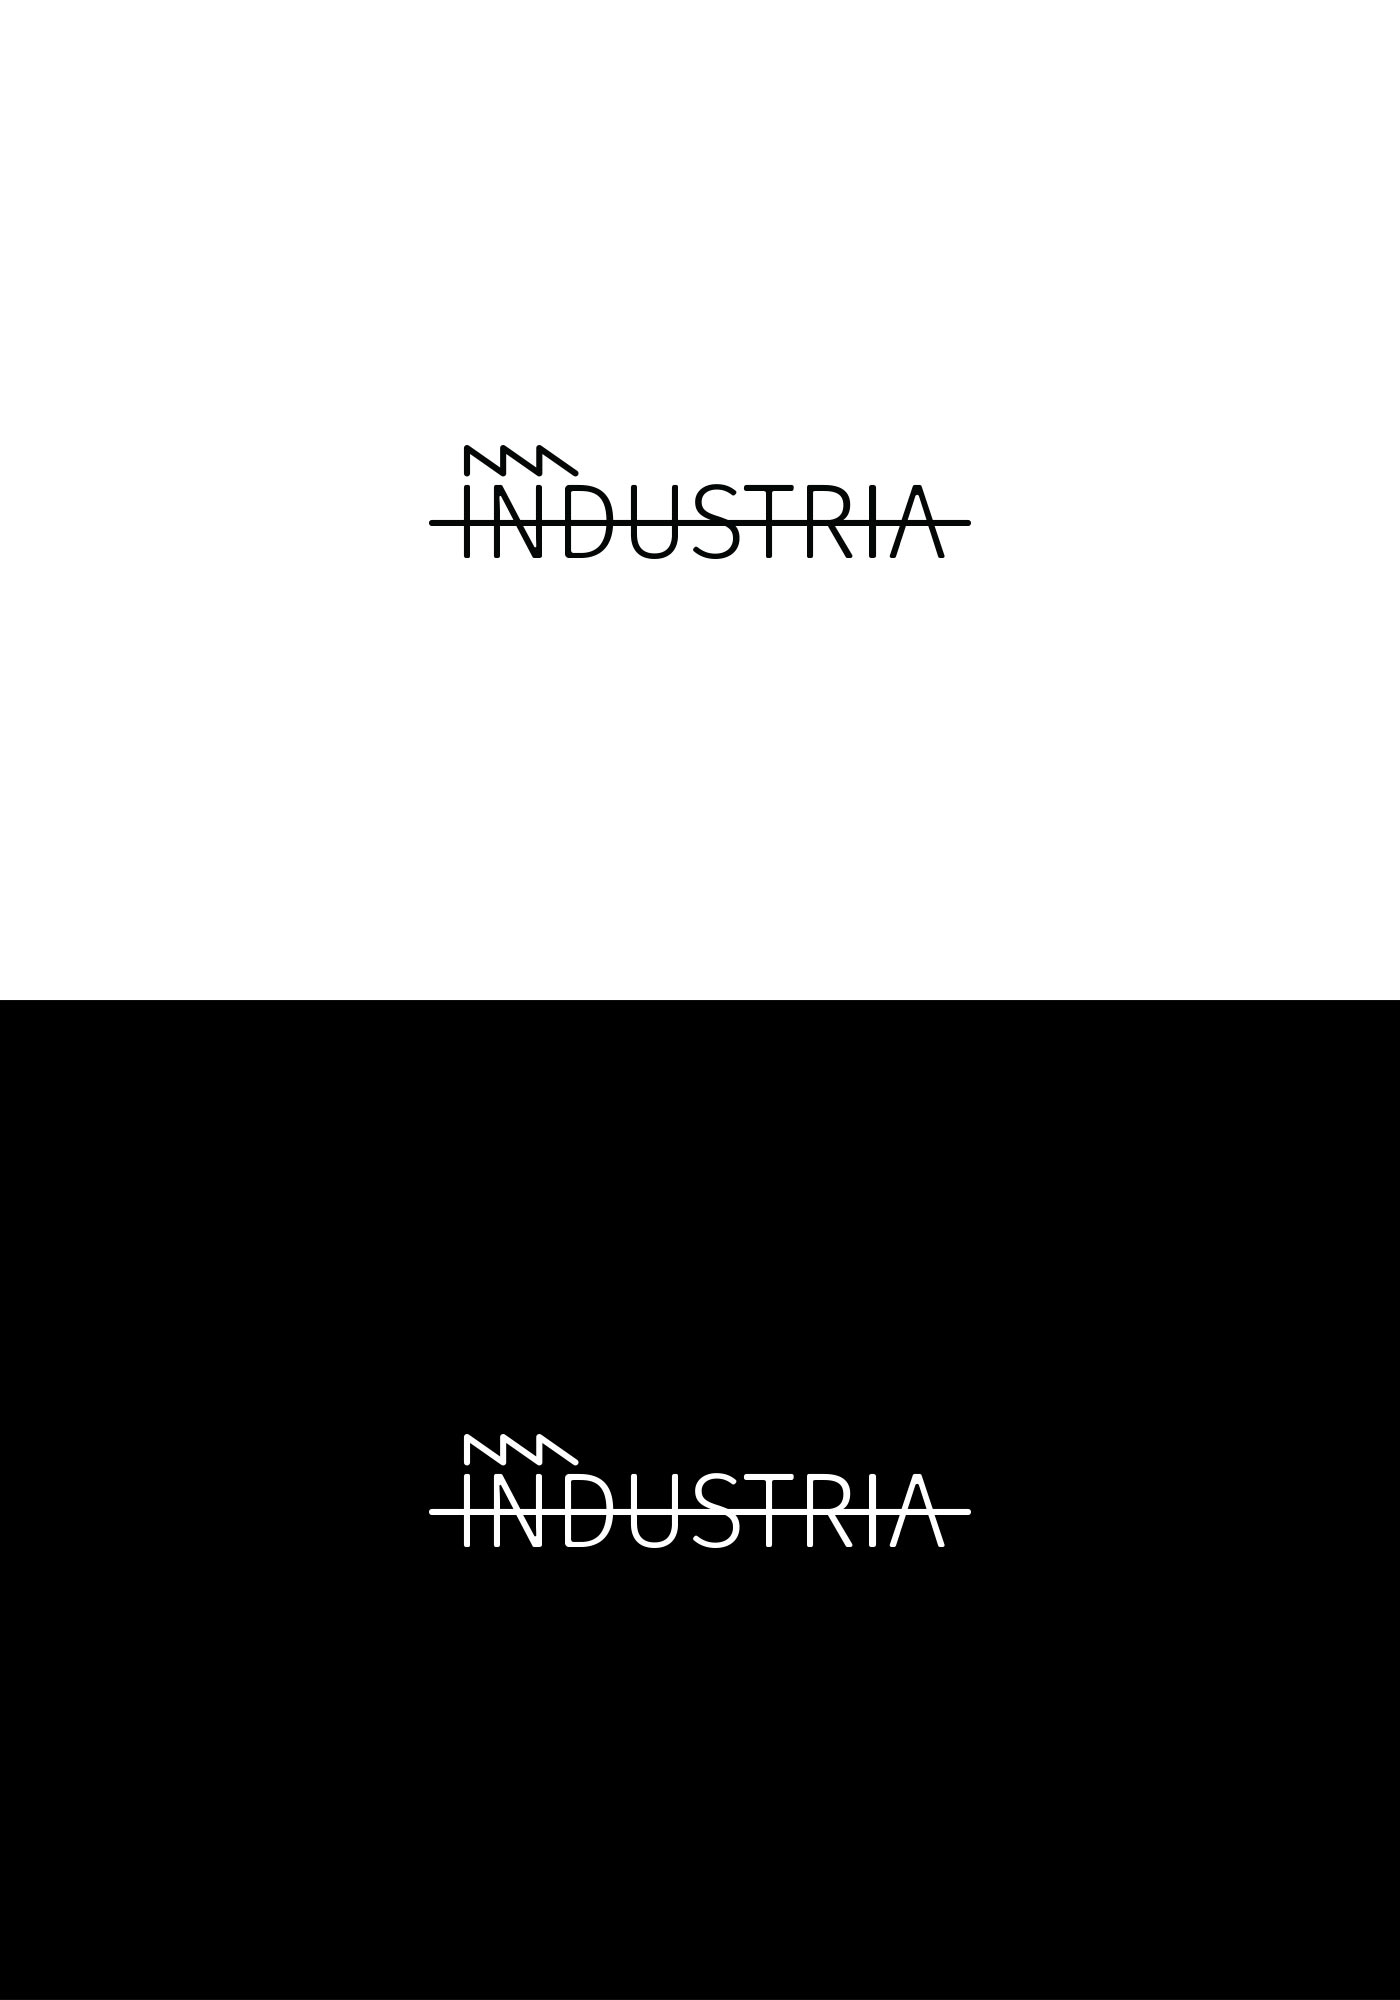 industria logo design 1